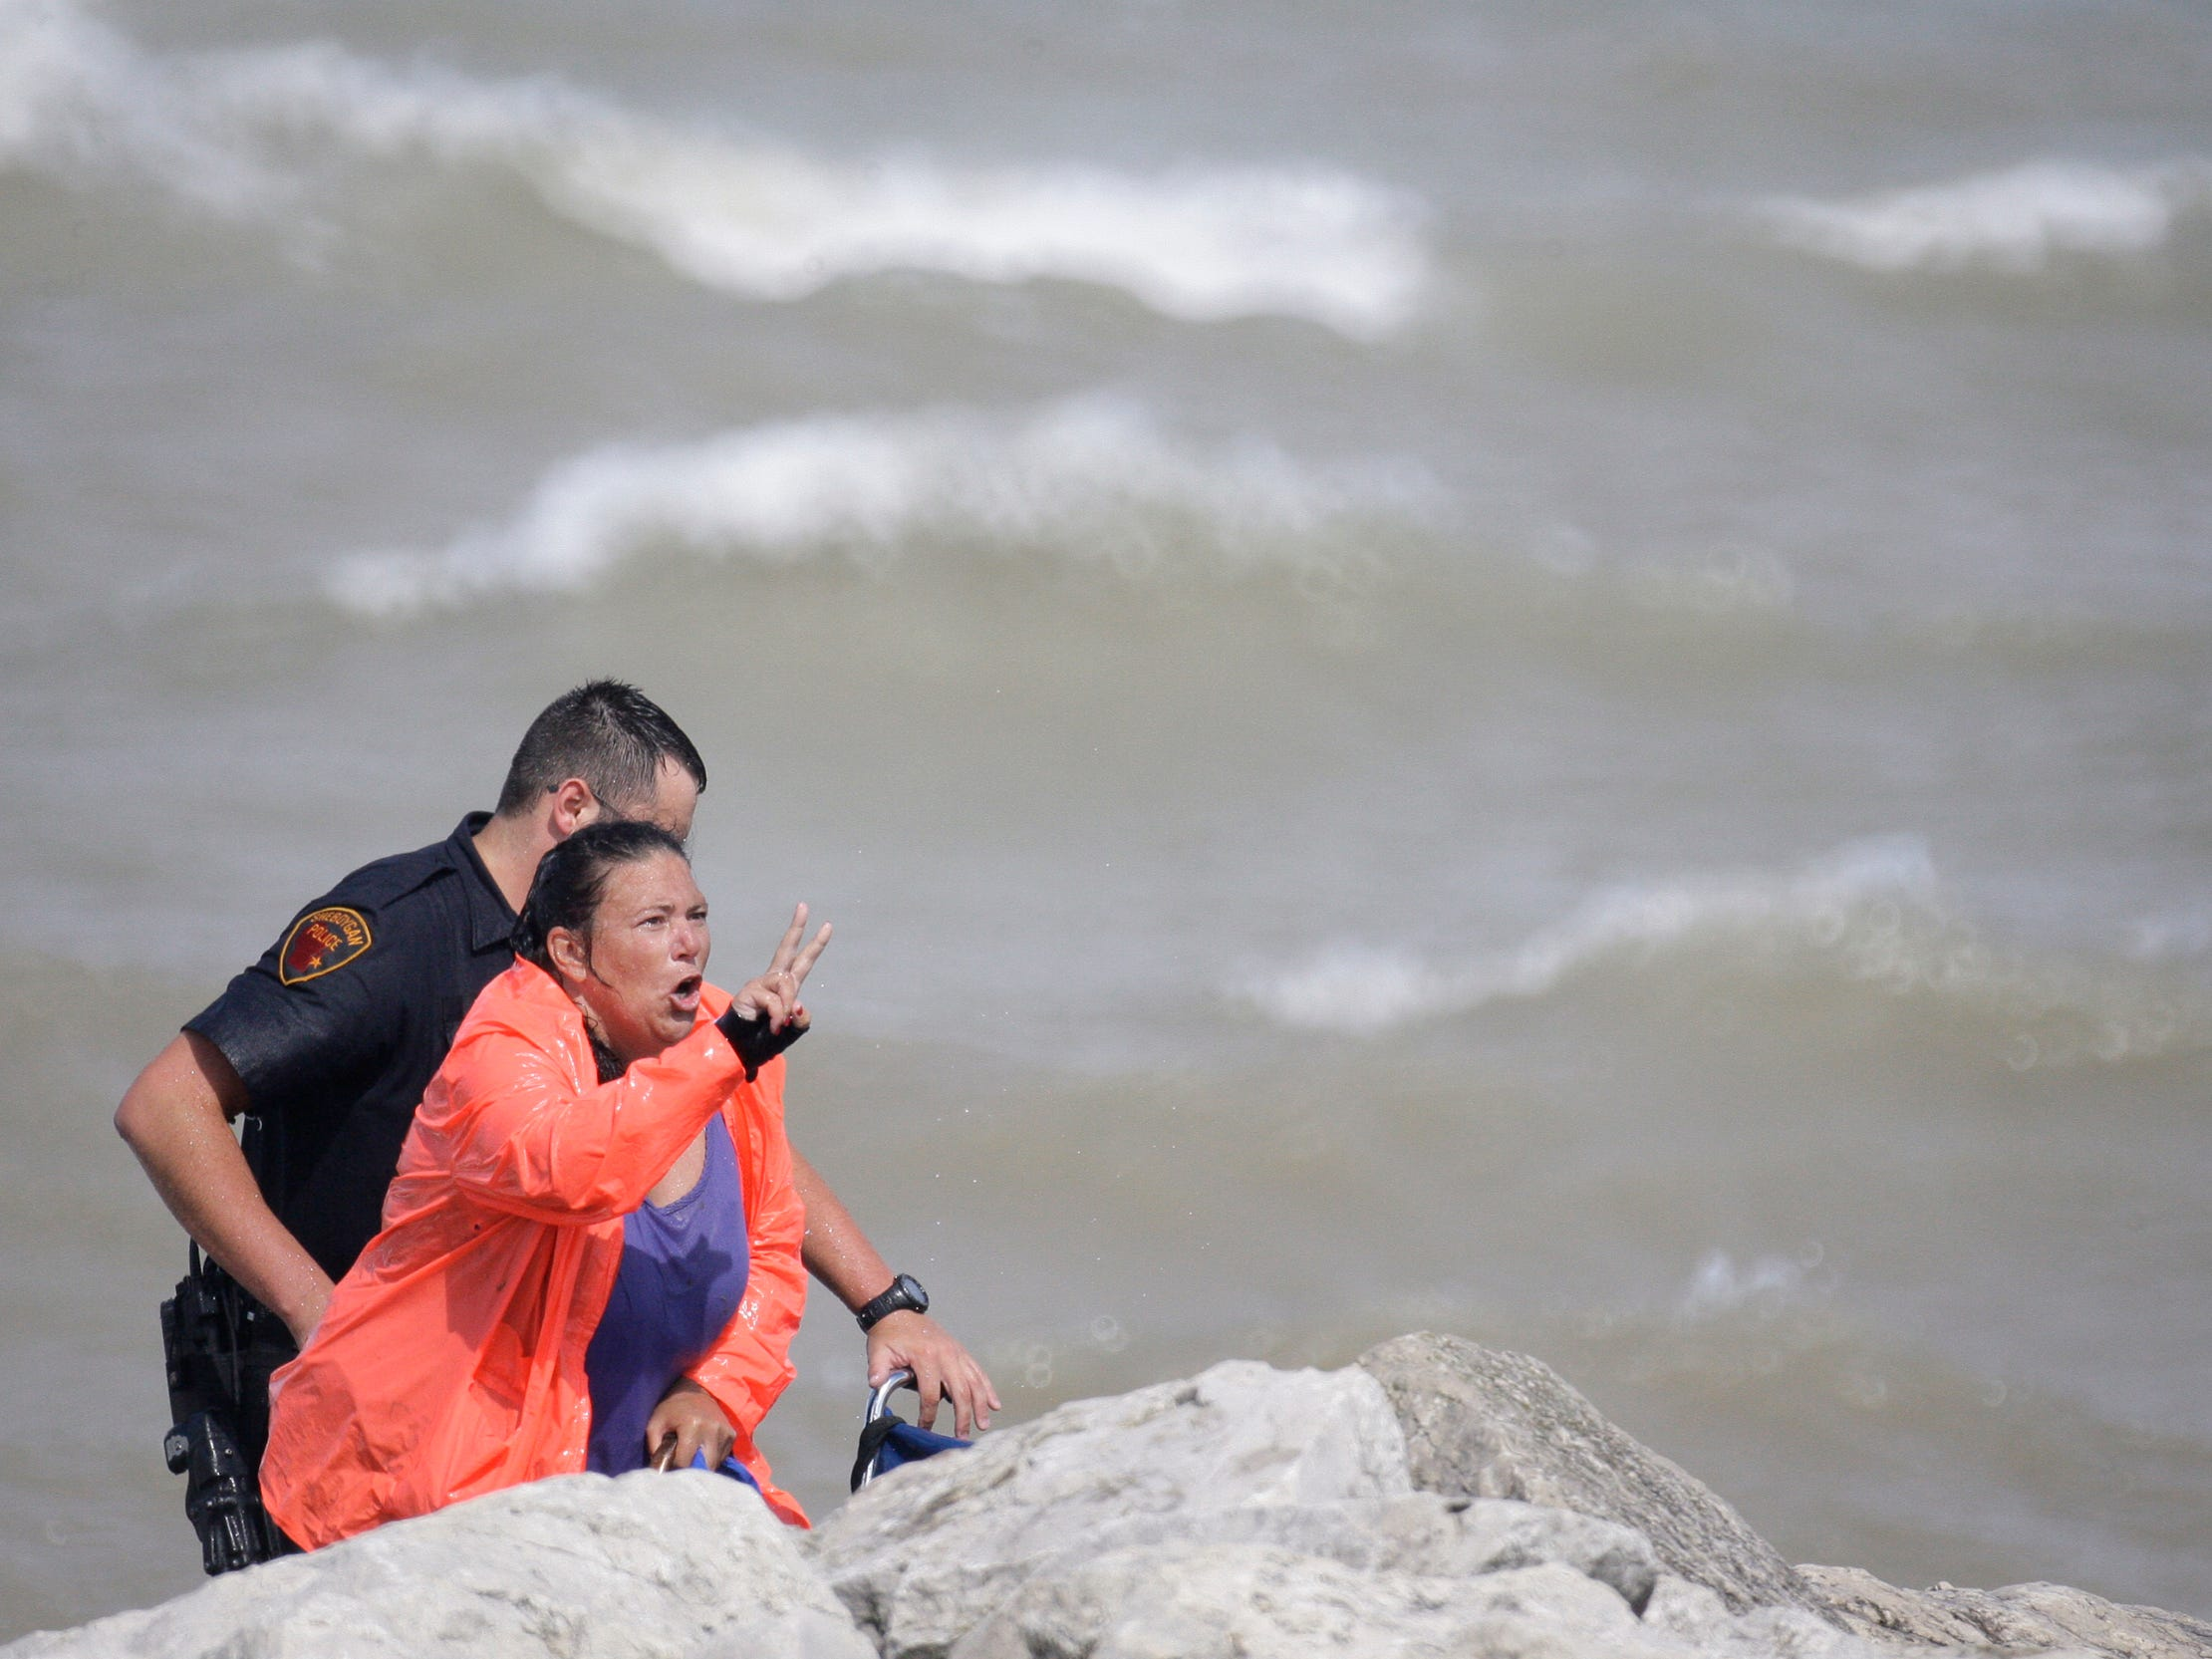 A rescued woman communicates with law enforcement Aug. 10, 2012, in Sheboygan, Wis., near the North Pier.  FILE PHOTO